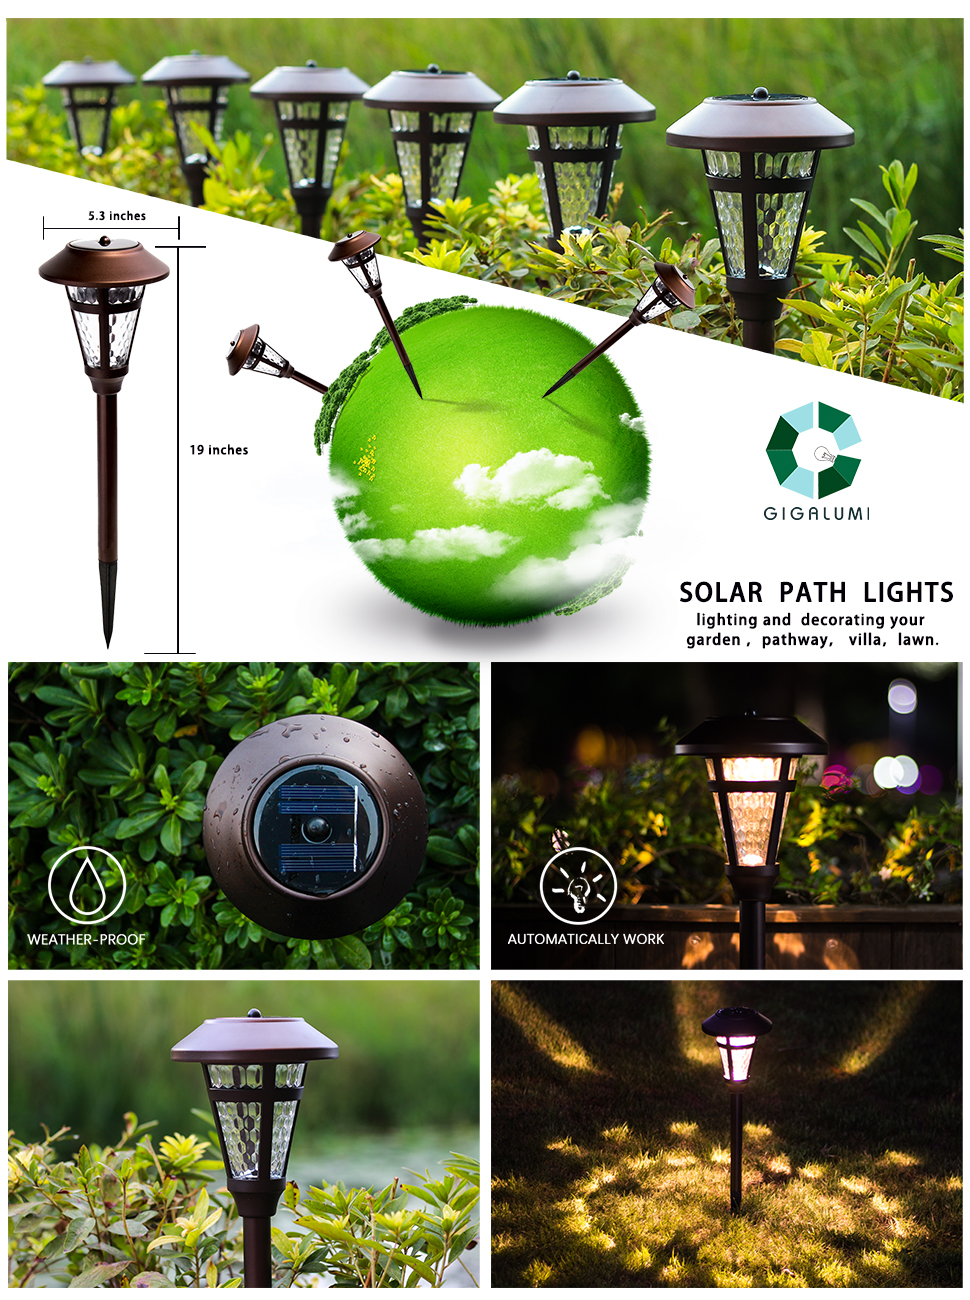 Gigalumi Solar Pathway Lights Outdoor 6 Pack Super Sunny Light Gardensolar Yard Powered Lighting 6850 Landscape